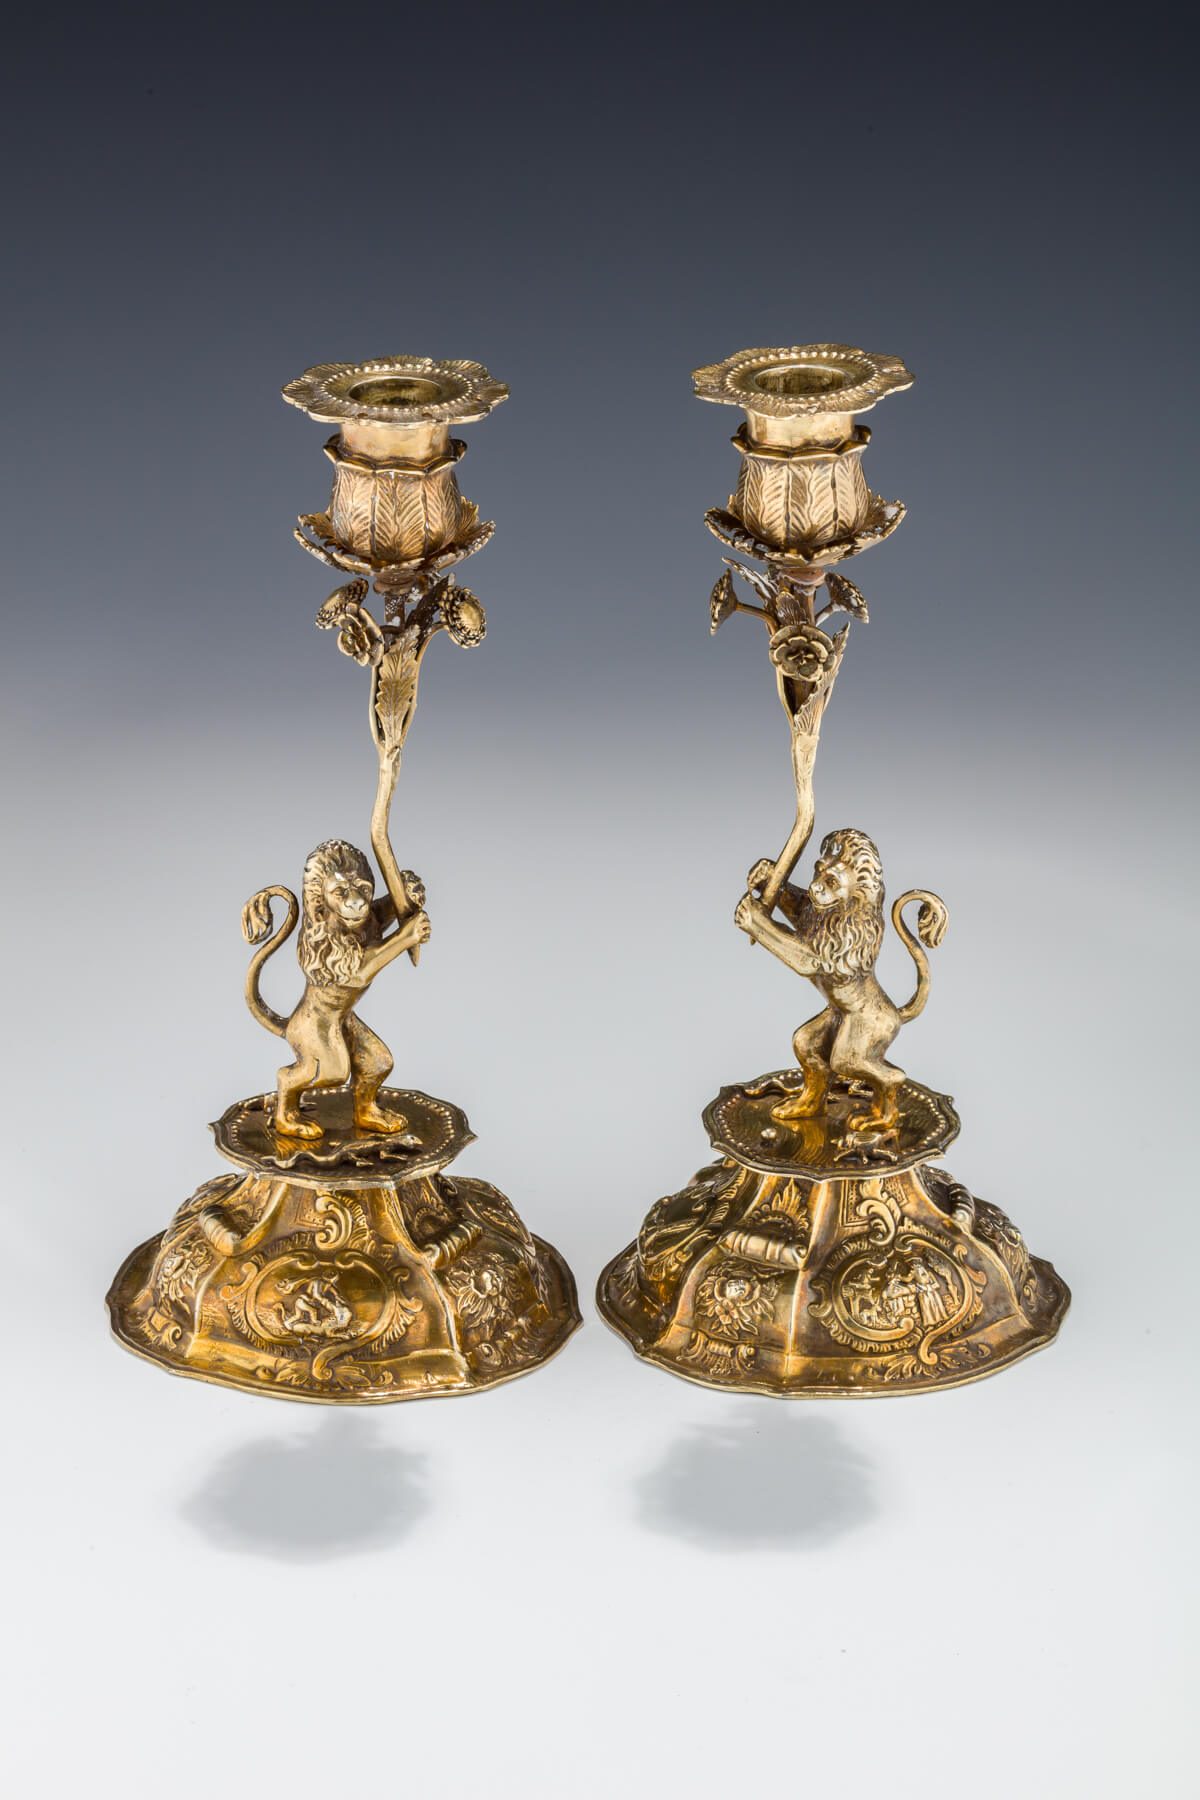 096. A Pair of Silver Sabbath Candlesticks